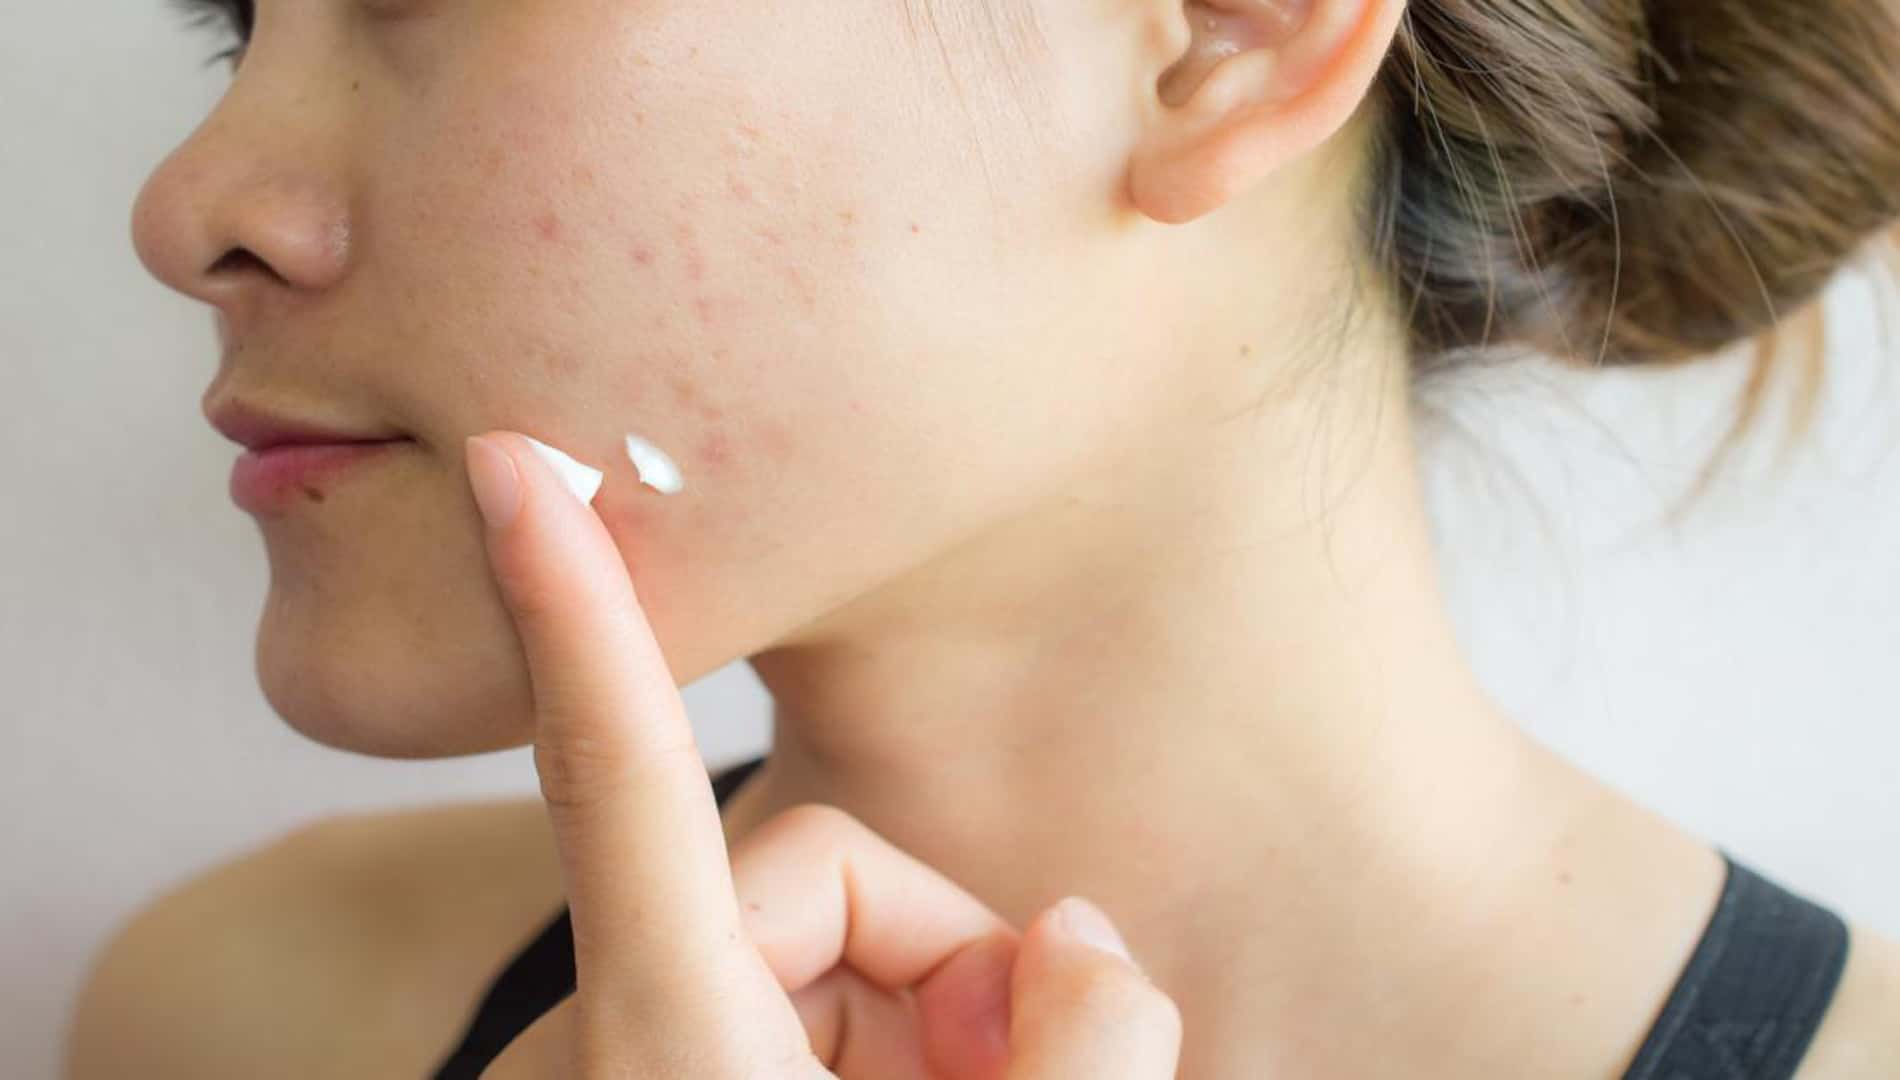 How To Remove Acne Scars From Face Fast